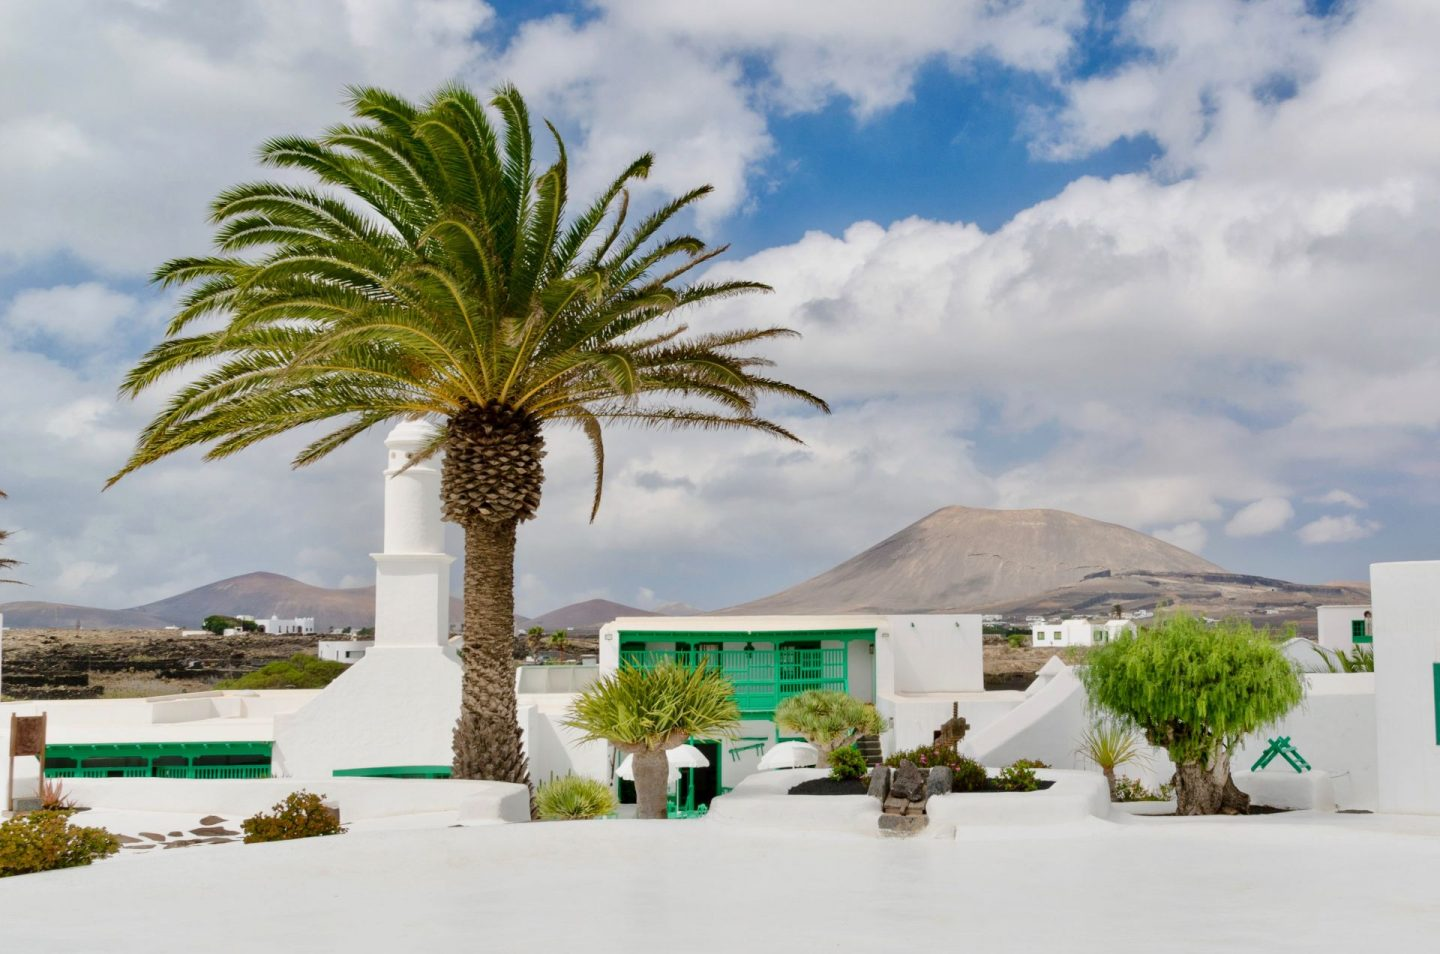 Things to do in Lanzarote: Cesar Manrique House from the outside, white with a large palm tree